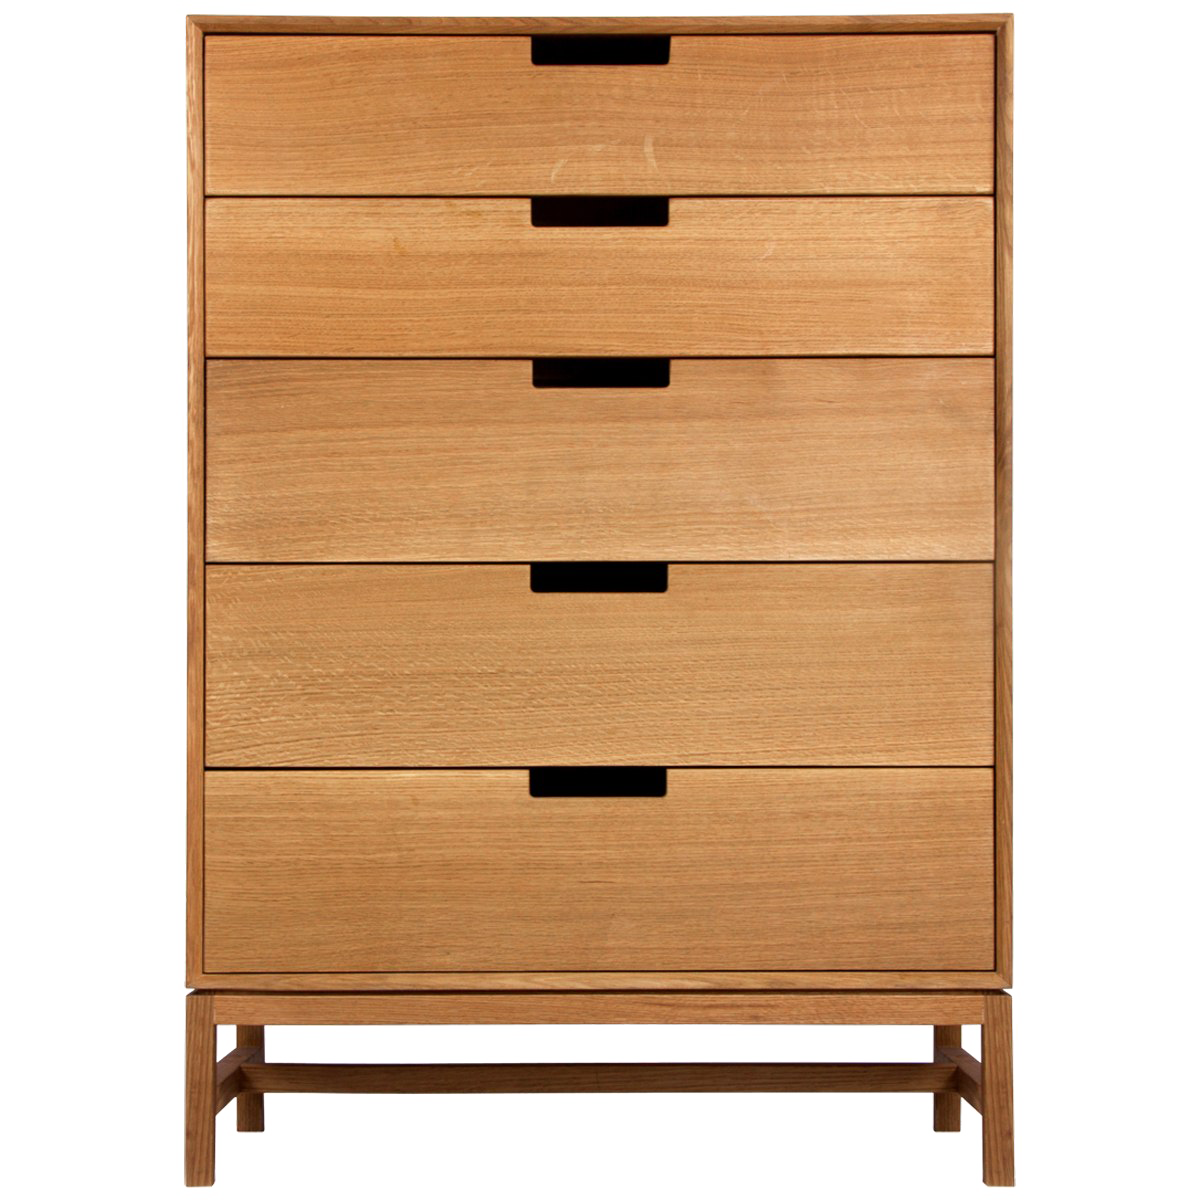 Dresser clipart sideboard. Clip arts for free